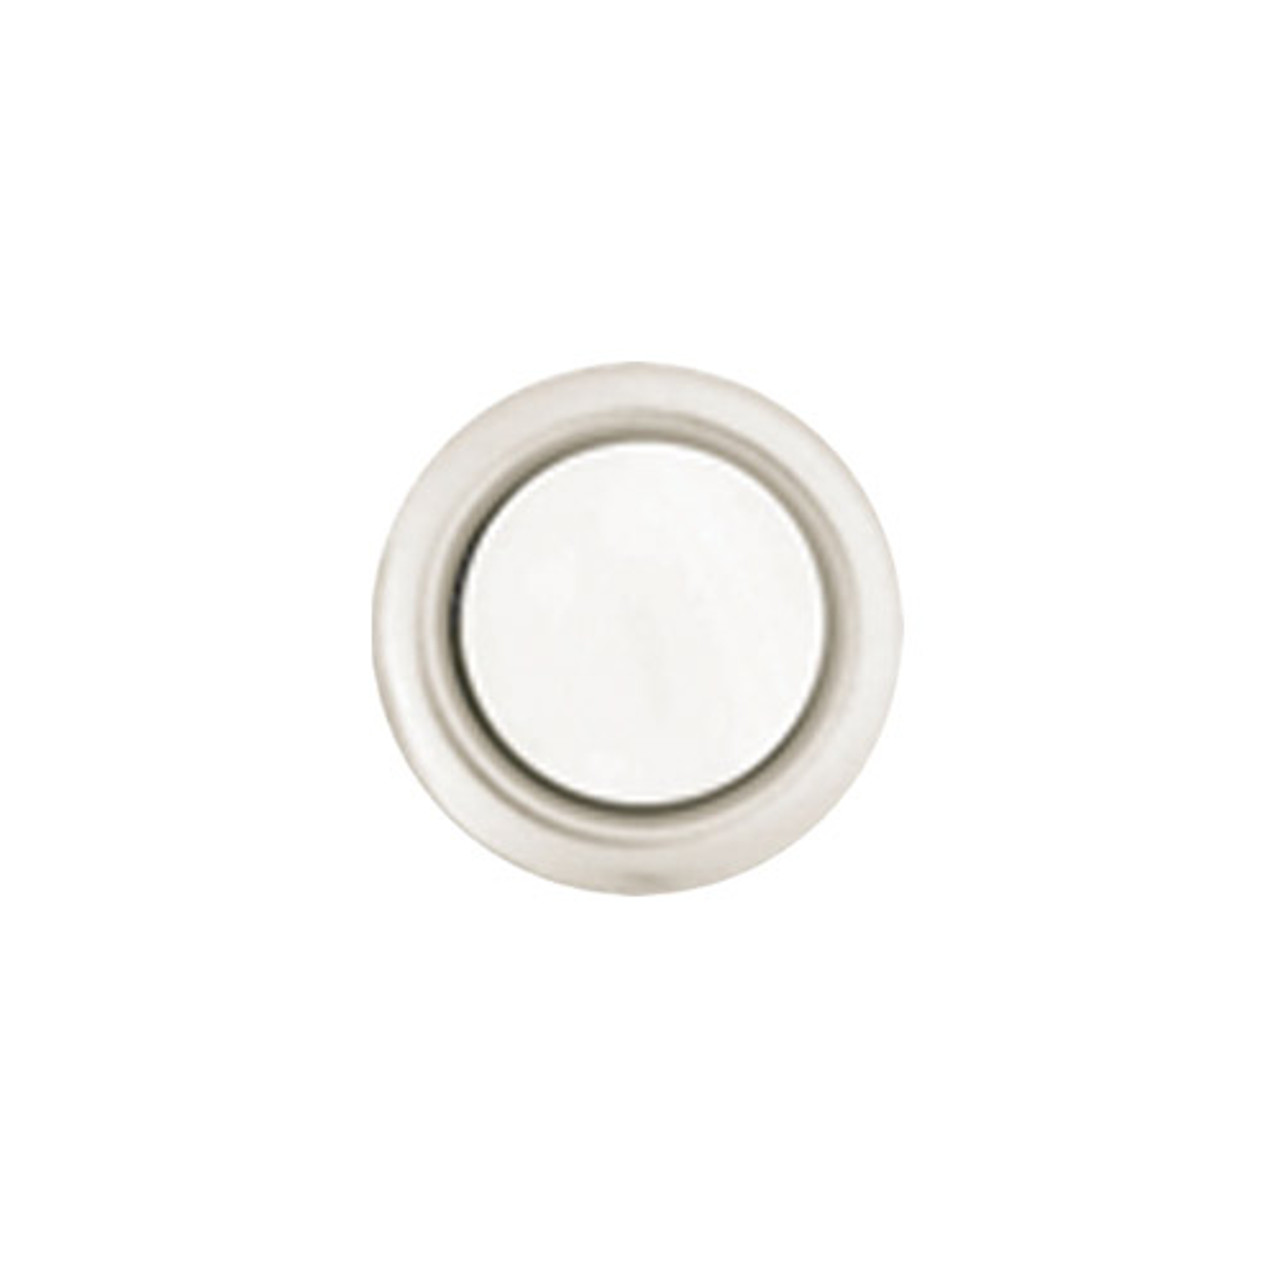 45A Trine Bell Button Silver Rim with Pearl Center